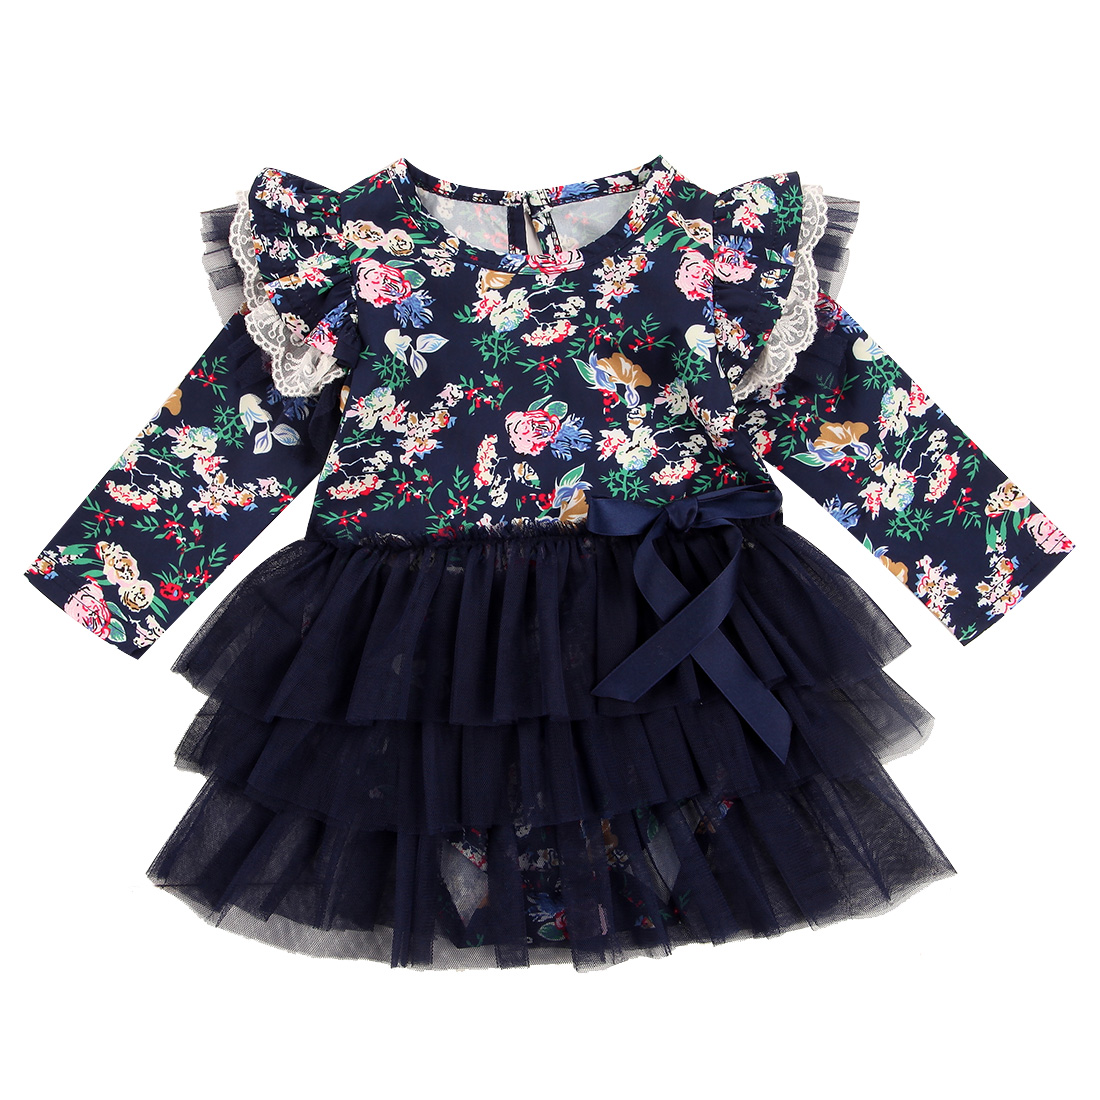 Newborn Baby Girls Infant Tutu Dress Clothes Outfit New Autumn Long Sleeve Dresses for Girls